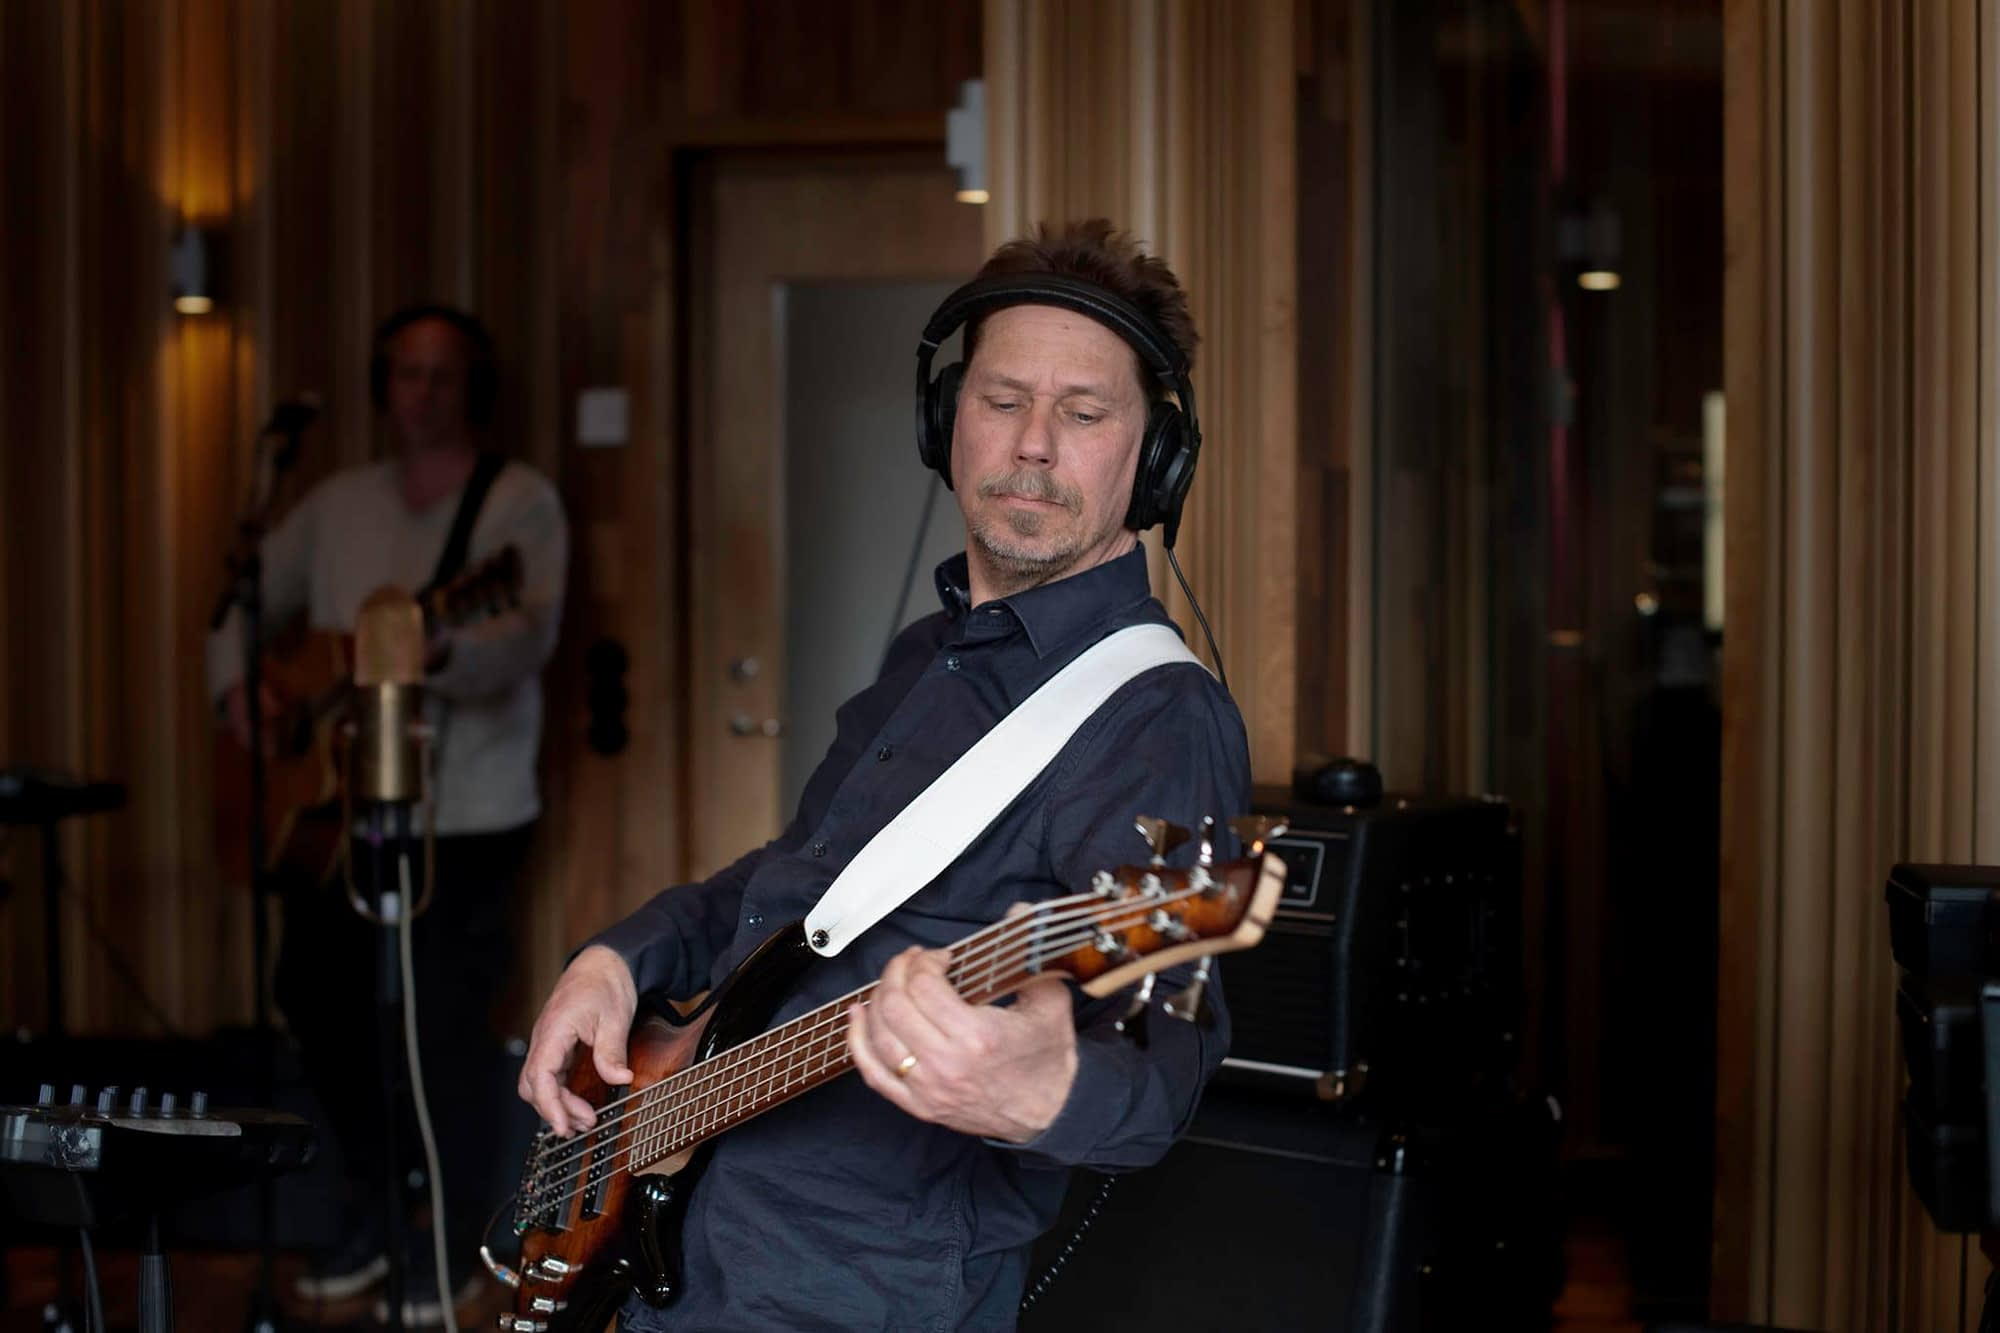 Bass player Thomas Midemyr records his electric bass in the studio